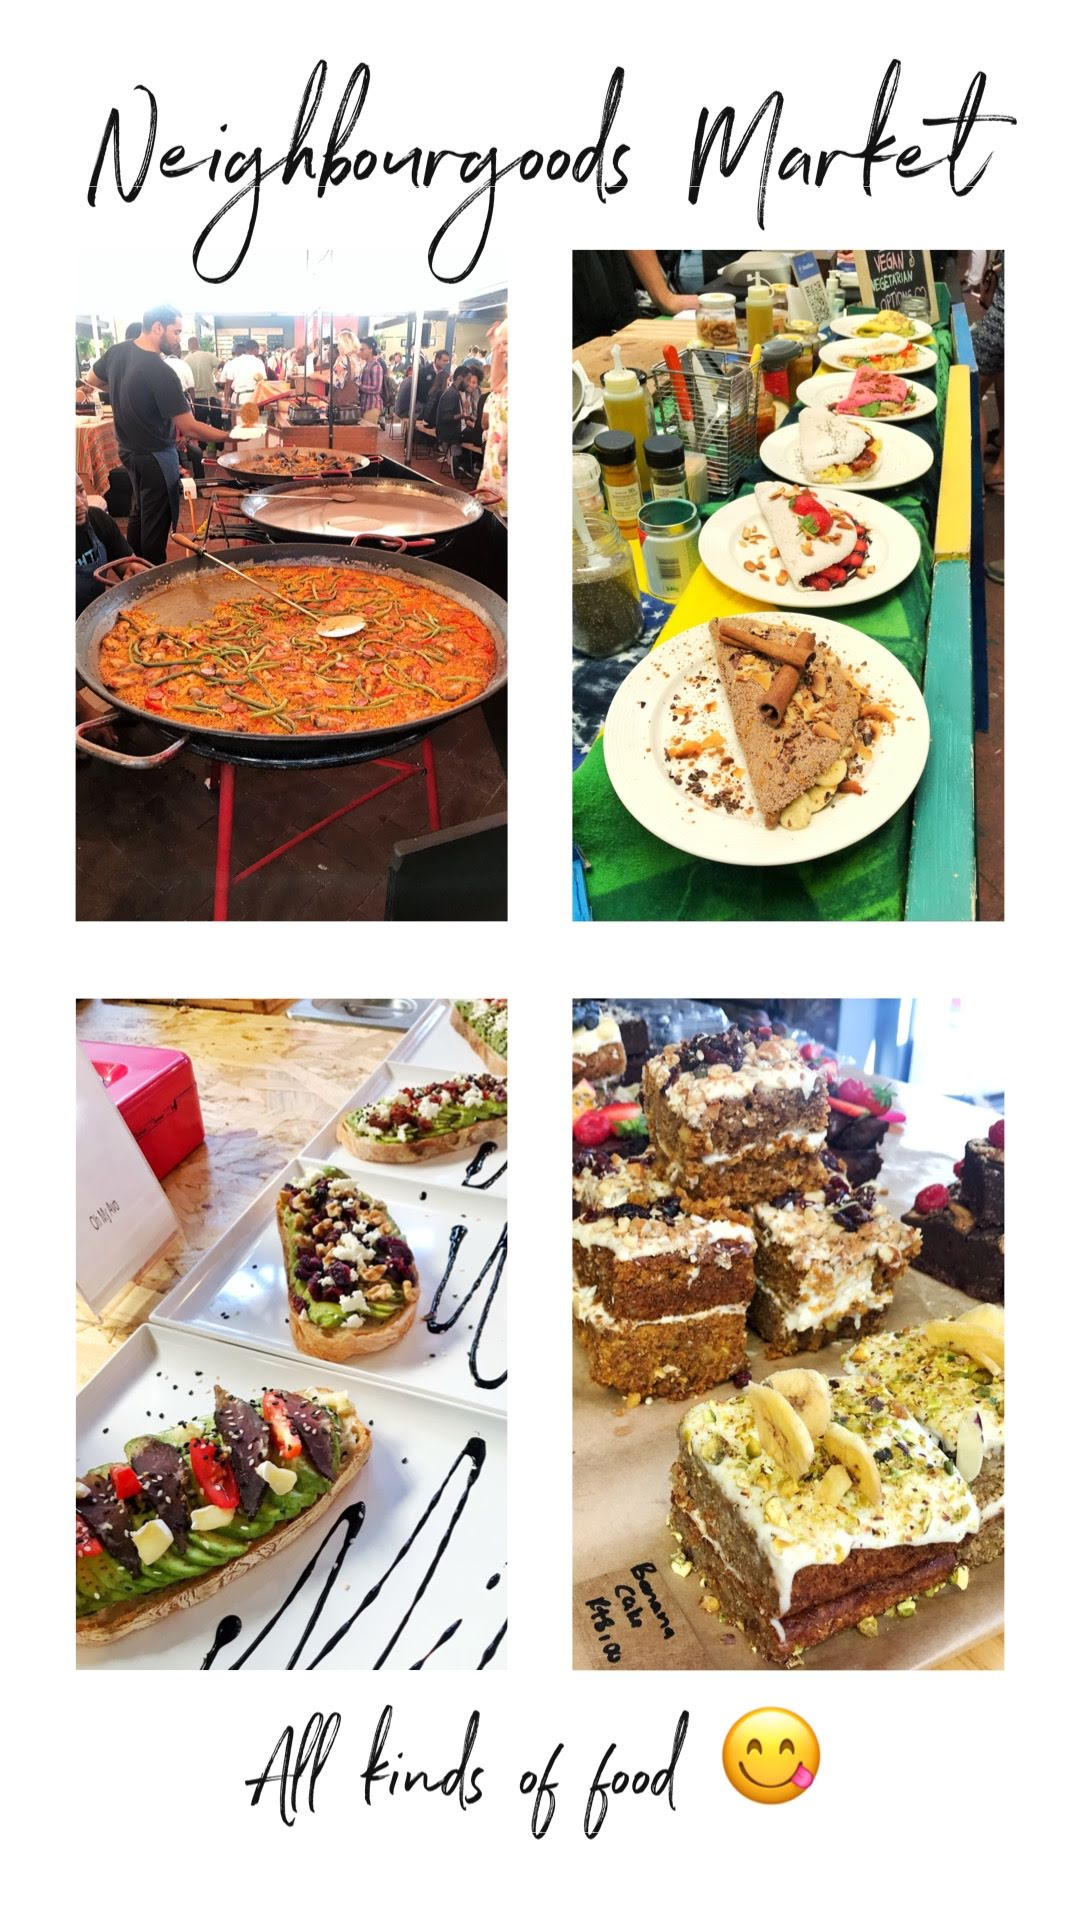 The Foodie's Destination - We've been to a few markets in the past, but this one was definitely the best. There were so many different booths with all sorts of food- avocado toast, crepes, burgers, paella, smoothies, beer, basically just about everything you could think of! Like look how big that pan of paella is in the first photo!So not only did they have all these different food booths, but there was also fresh fruit/ veggies, flowers and so many boutiques! We went into most of them, but ended up not getting anything because the clothes were too expensive IMO. Which I found strange since everything else in Cape Town was so cheap! However, Neighbourgoods is a high tourist destination, so of course the prices are going to be higher!